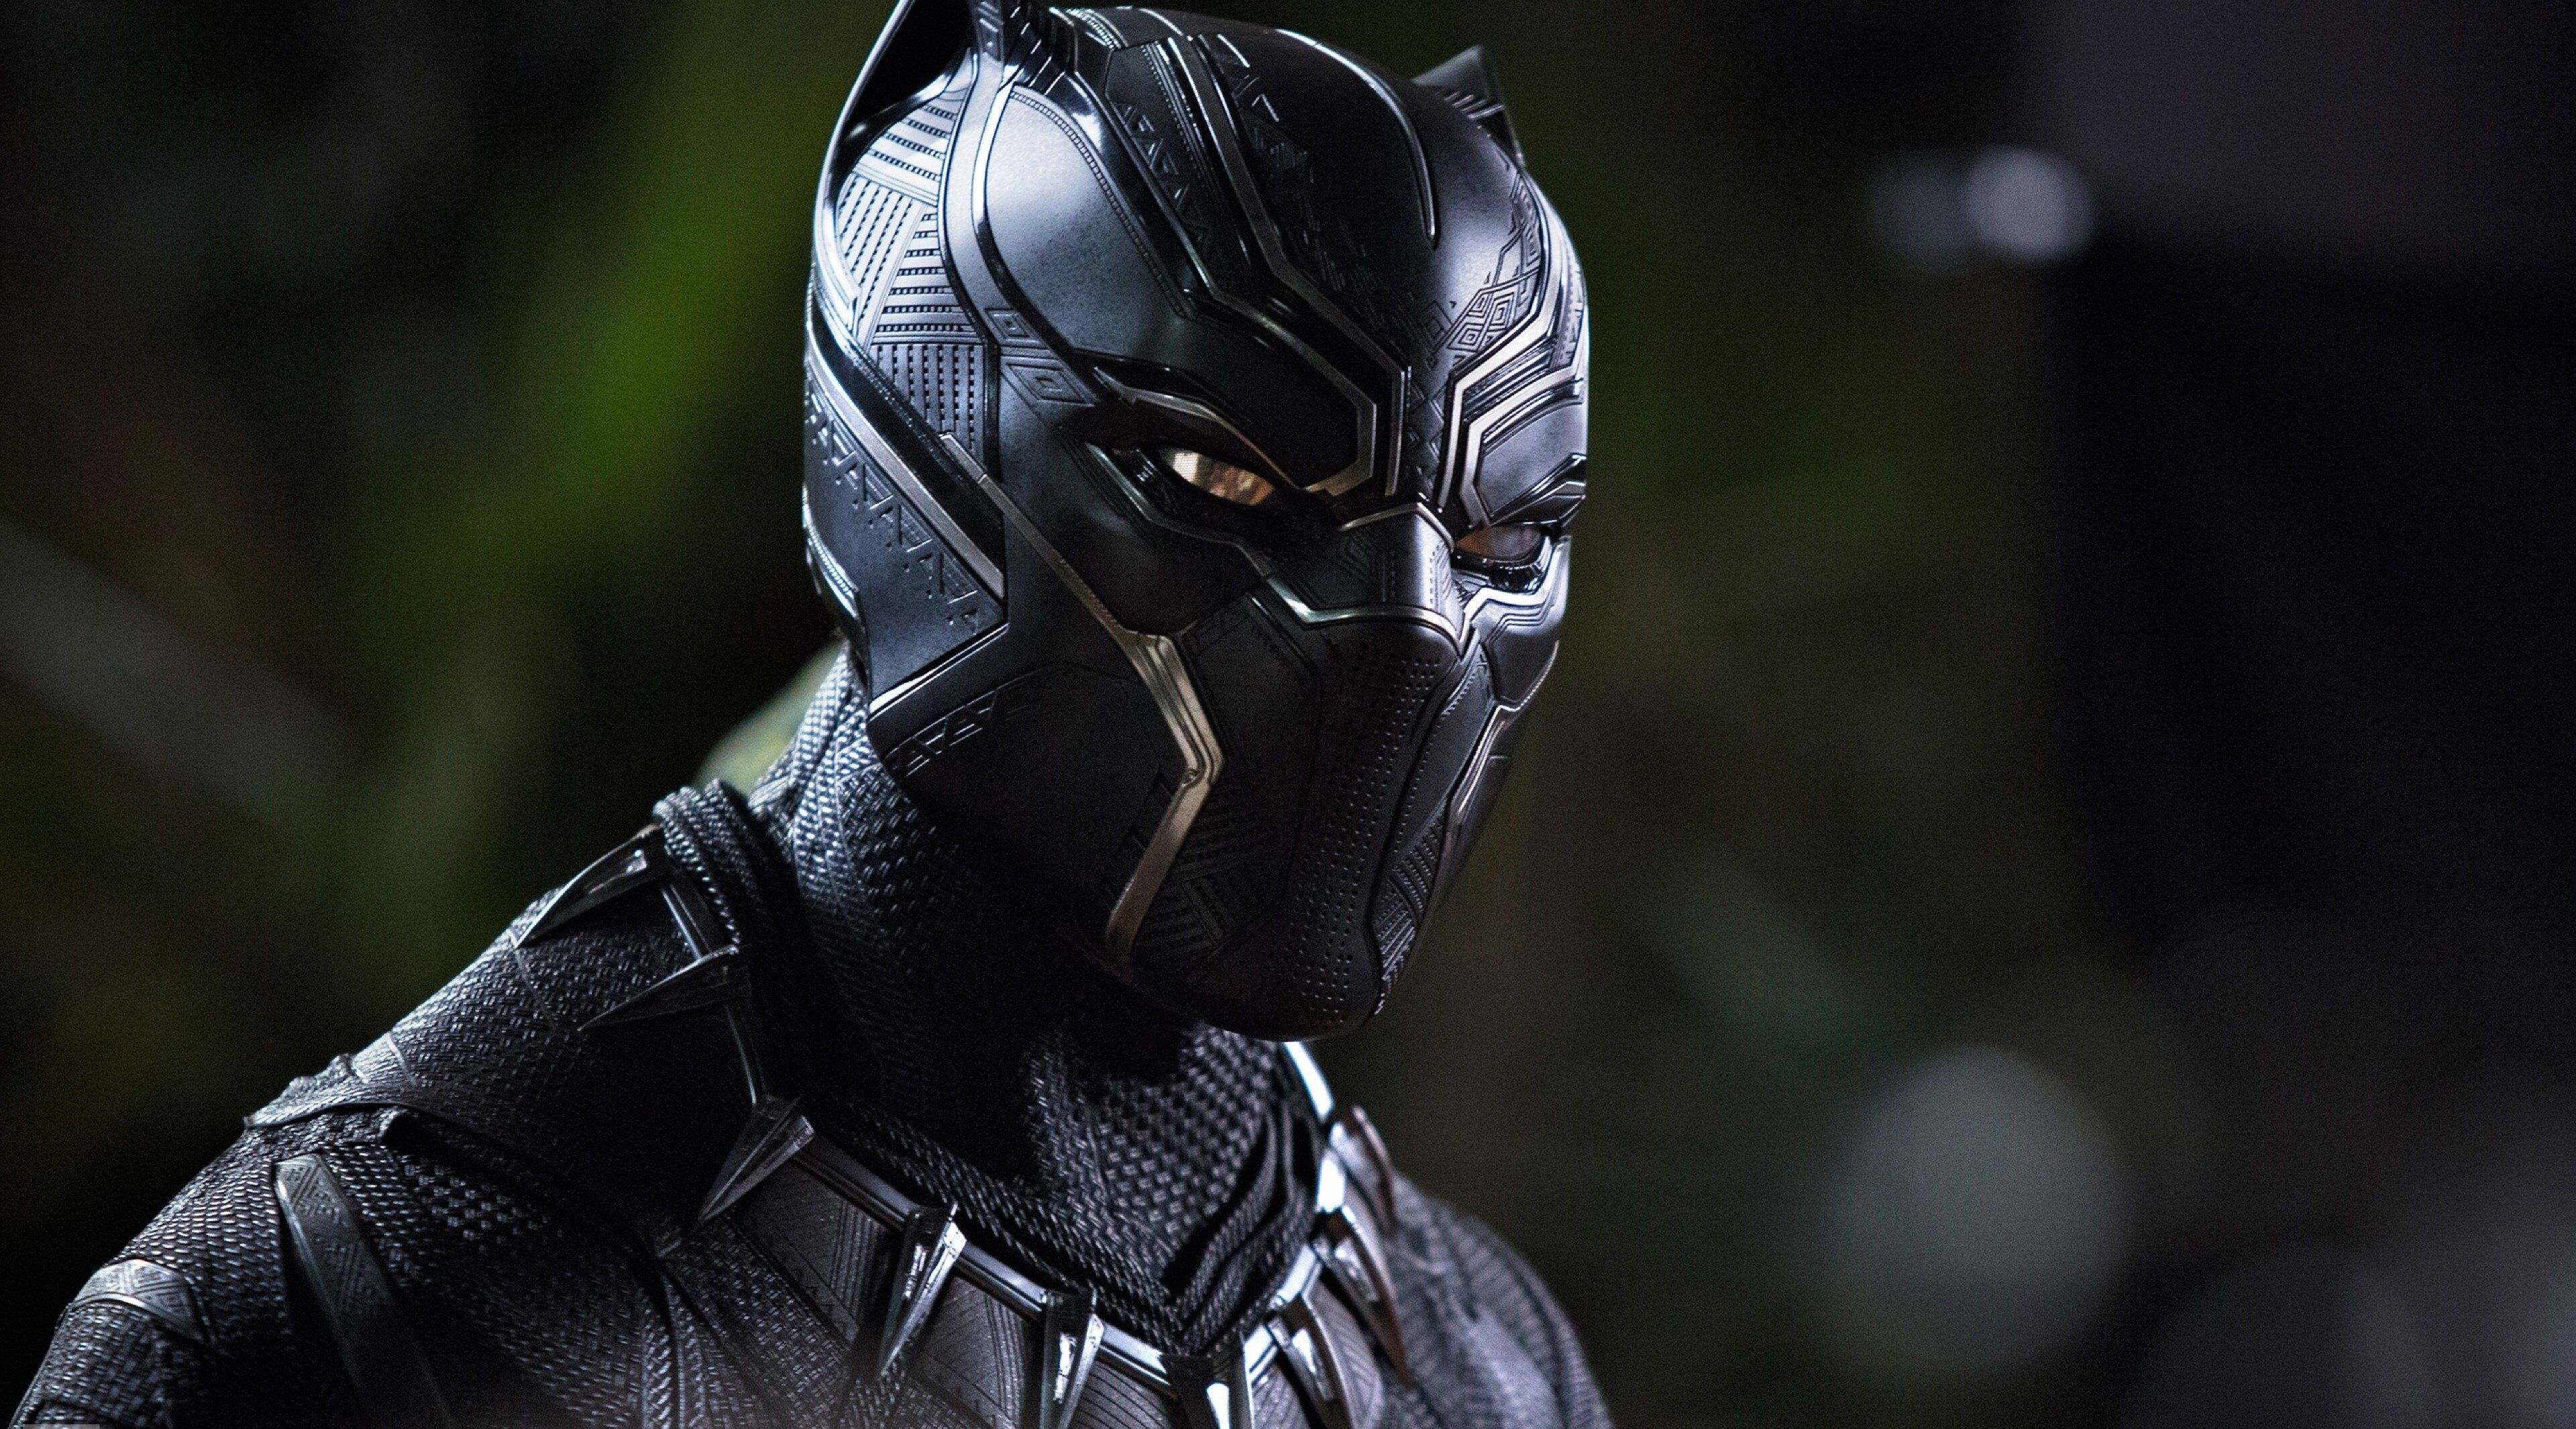 3840x2130 Black Panther 4k Free Download Wallpaper For Pc Hd Black Panther Marvel Movie Black Black Panther Costume